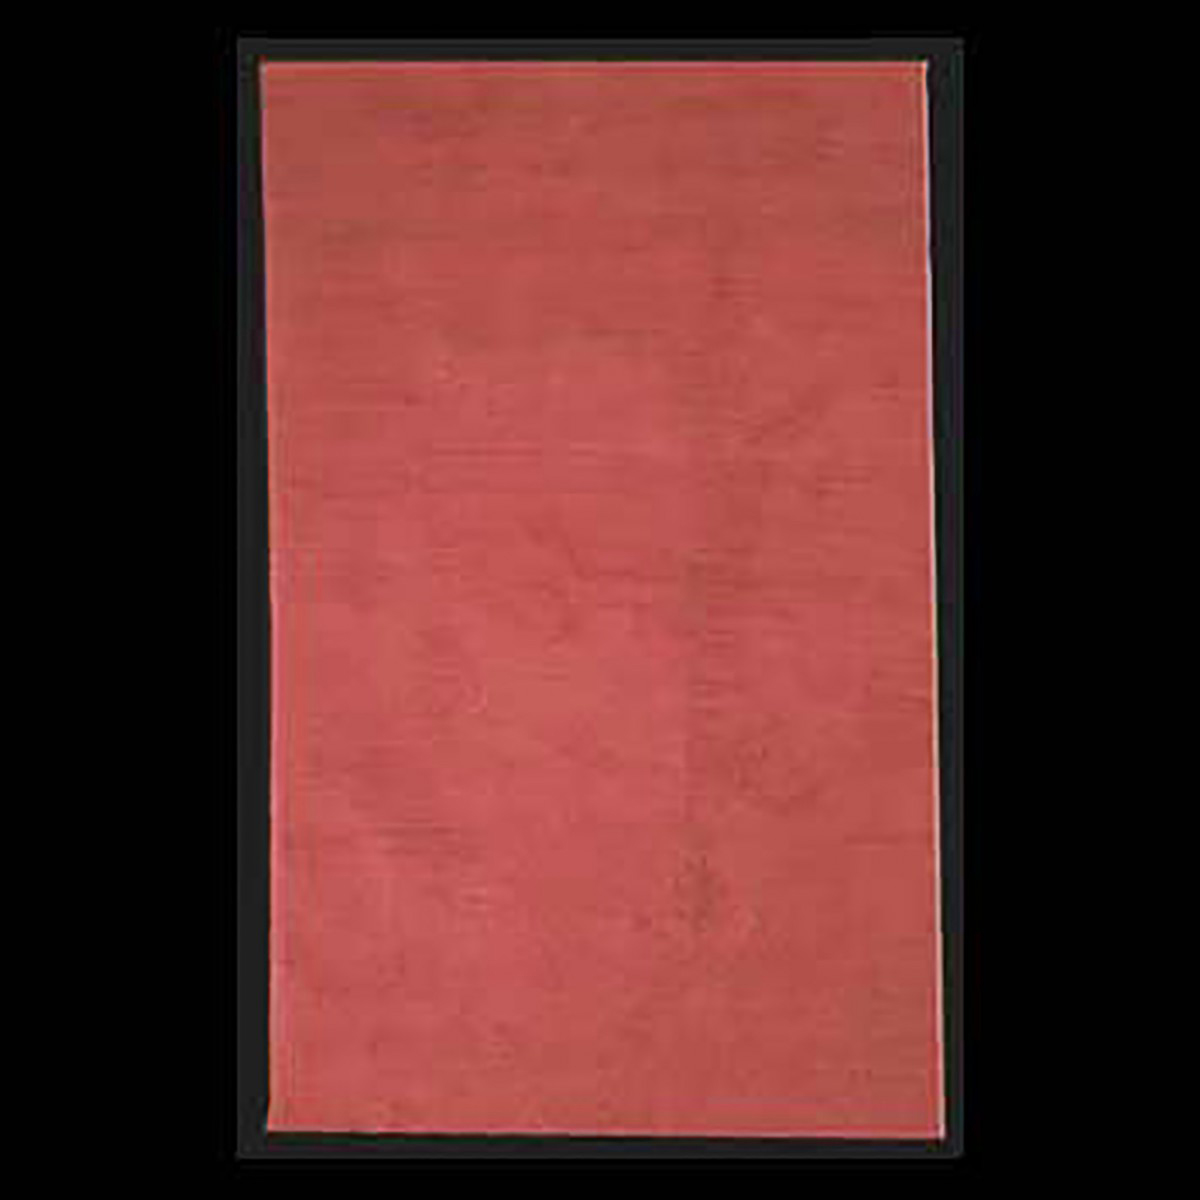 Rectangular Area Rug 9 x 6 Red Cotton Cotton Rugs Cotton Rug Cotton Area Rug